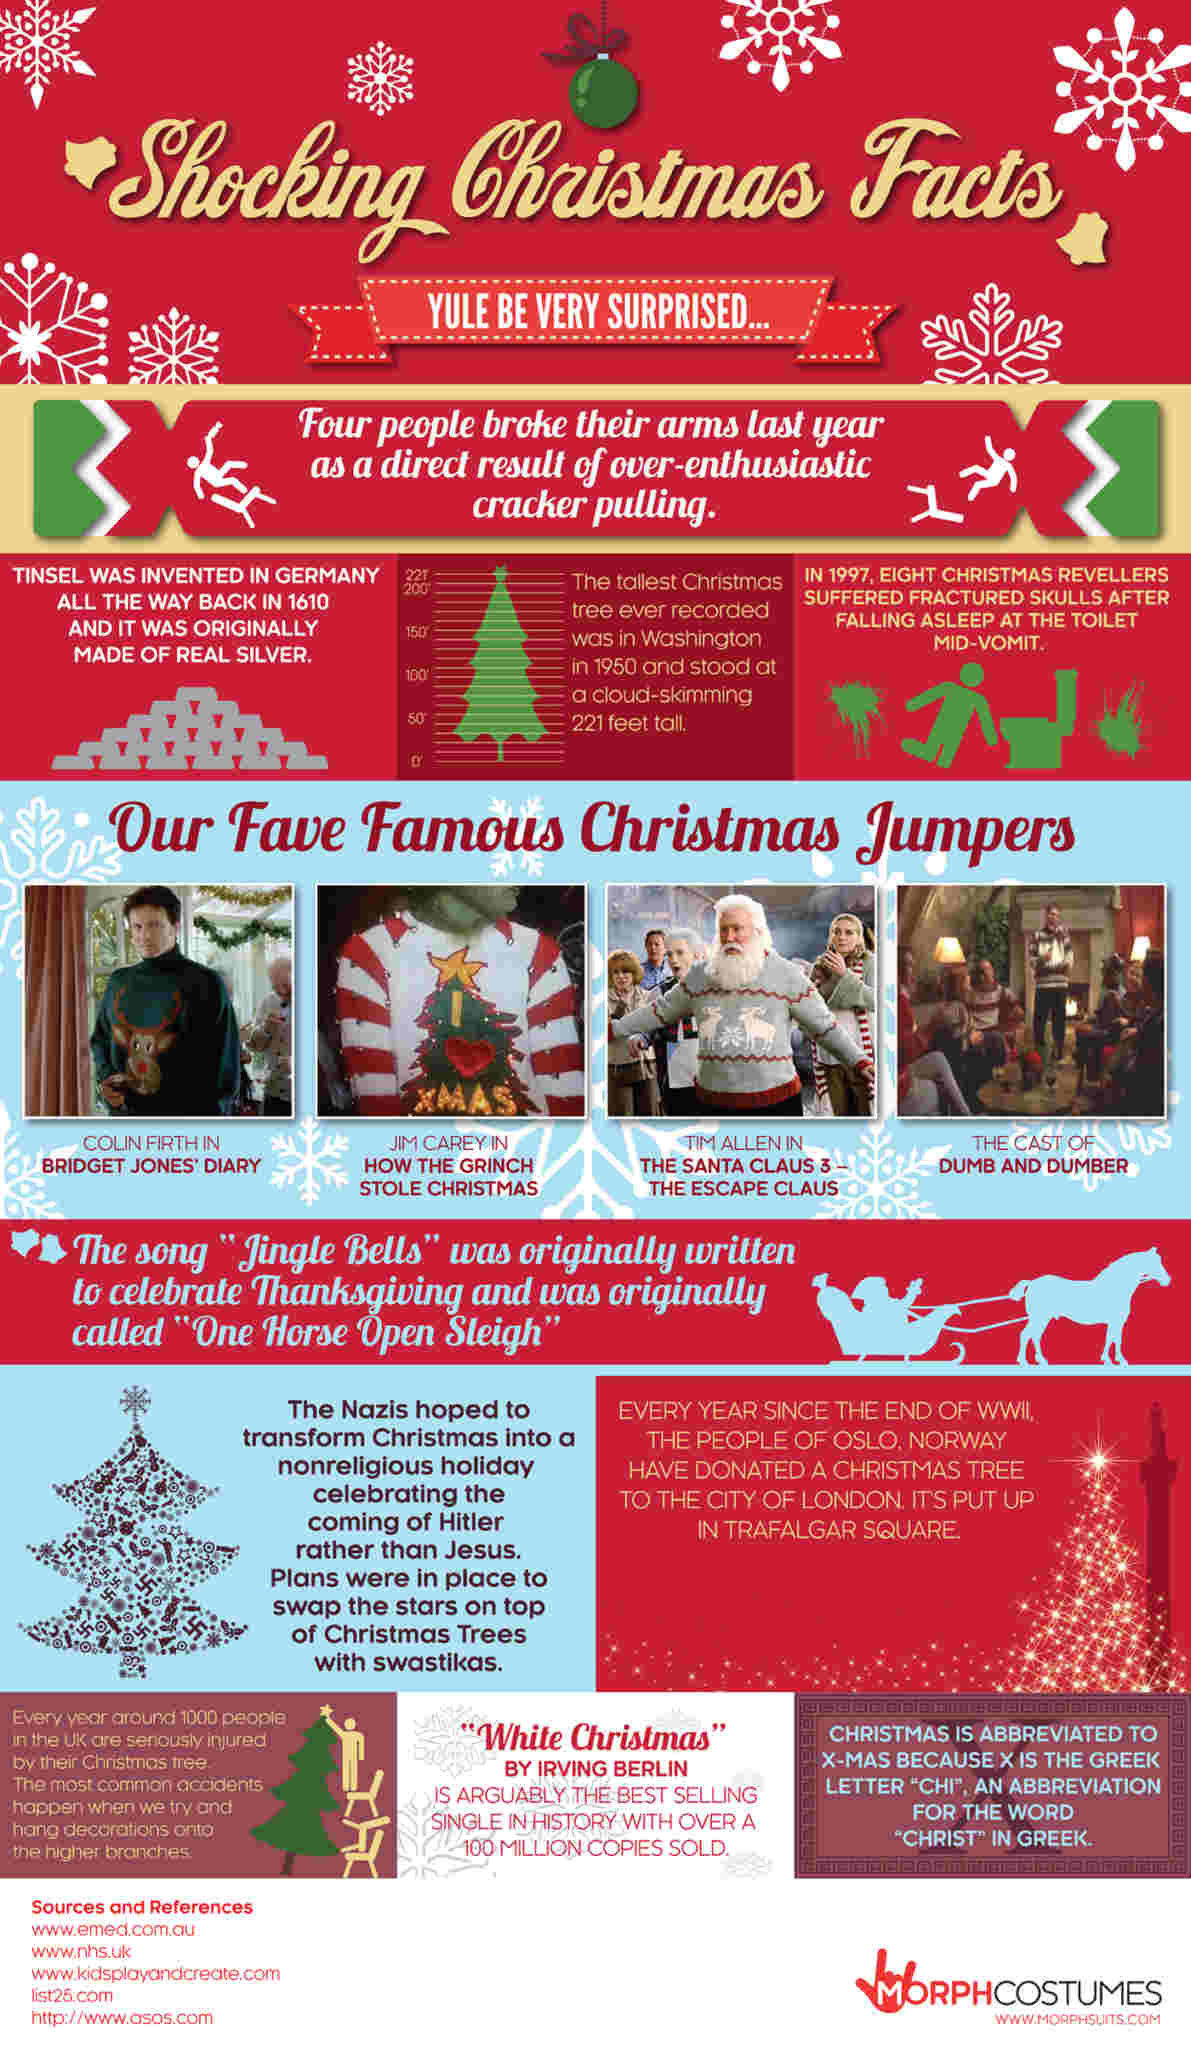 Shocking-Christmas-Facts-infographic-1